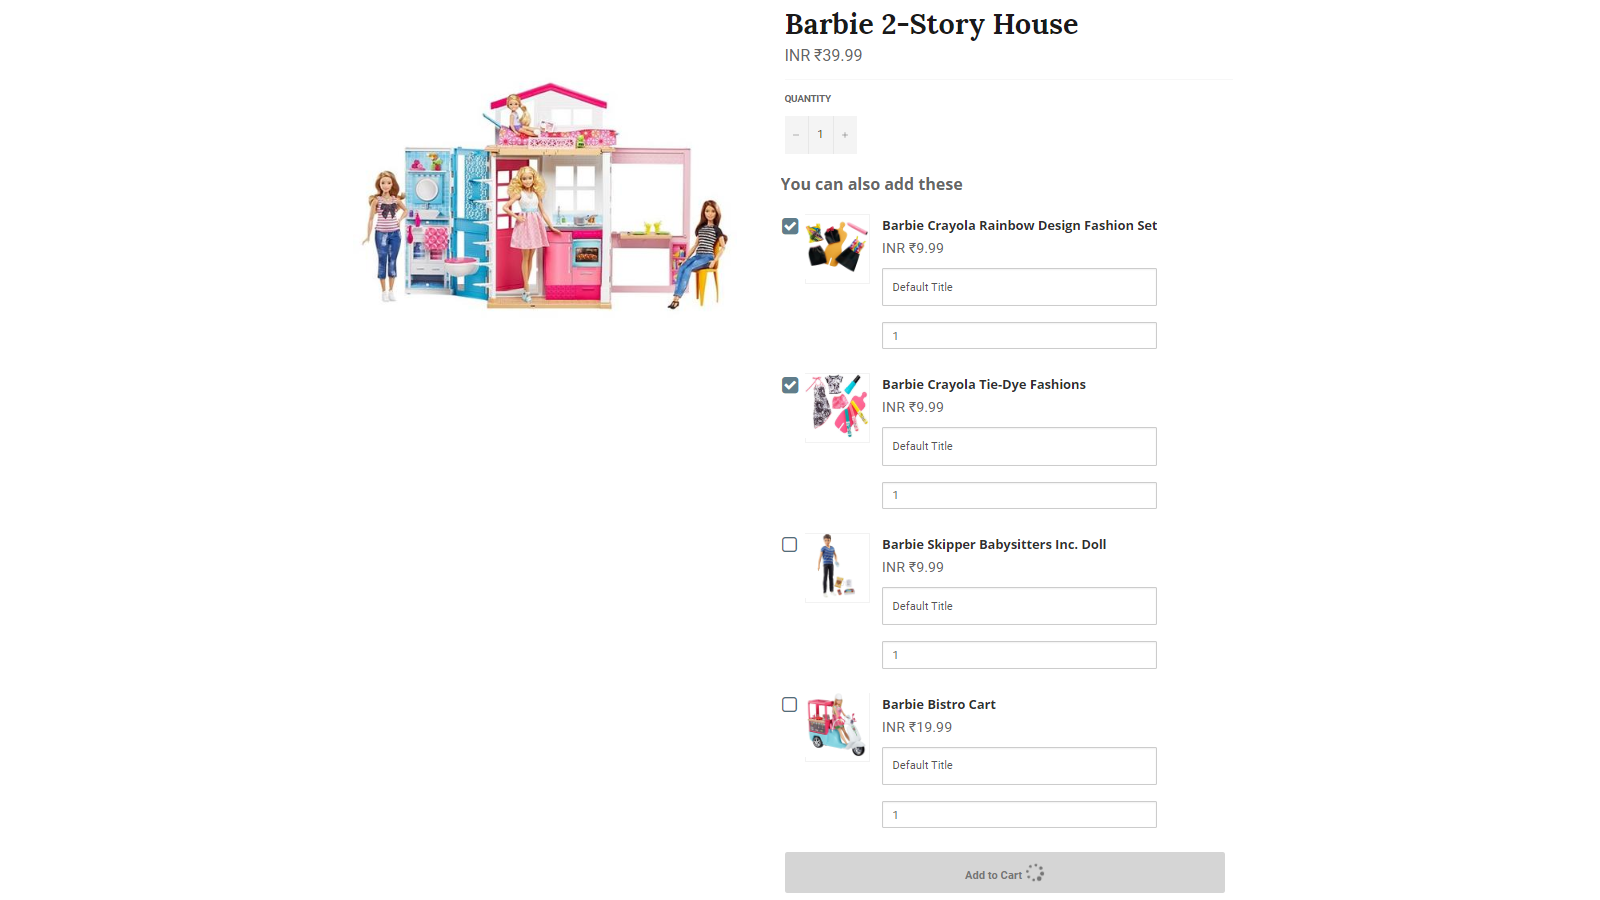 Display Addons / Accessories on Product Pages